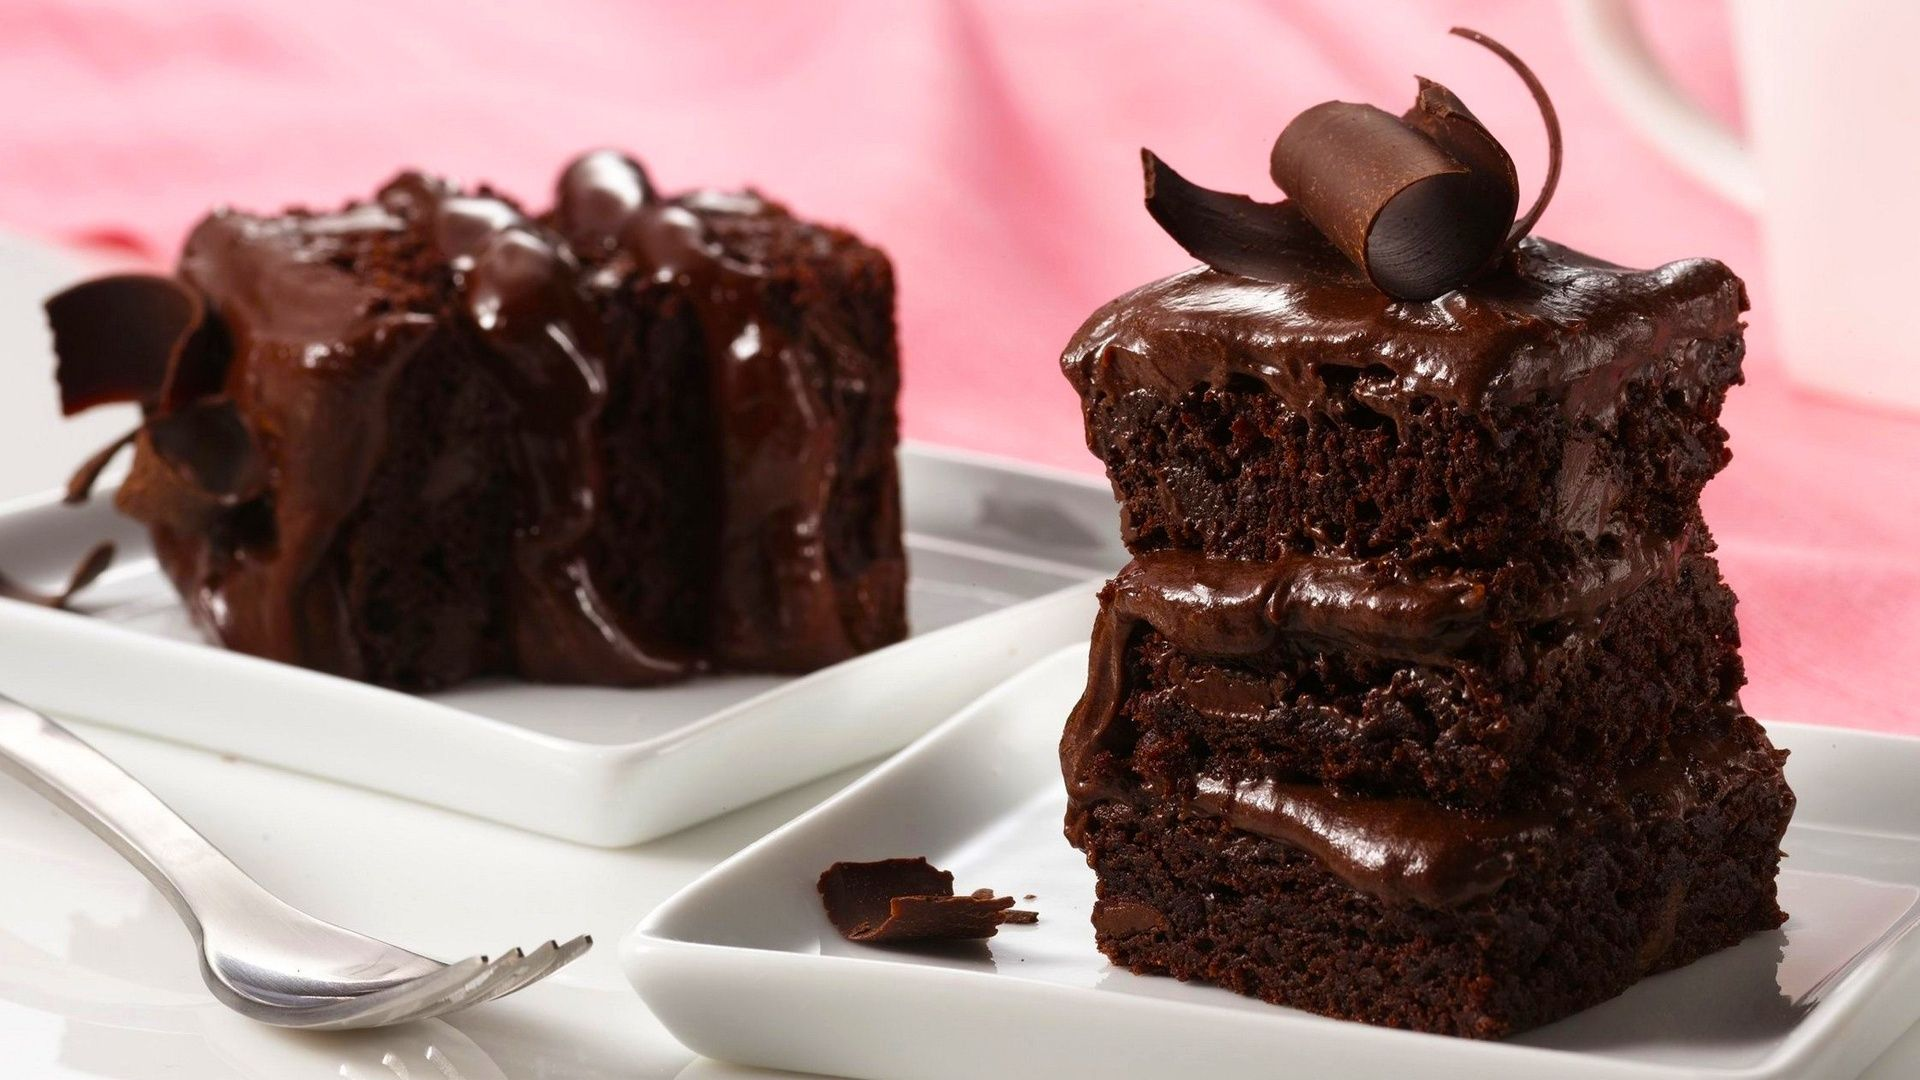 1920x1080 Chocolate Cake Wallpapers, HD Images Chocolate Cake Collection ...